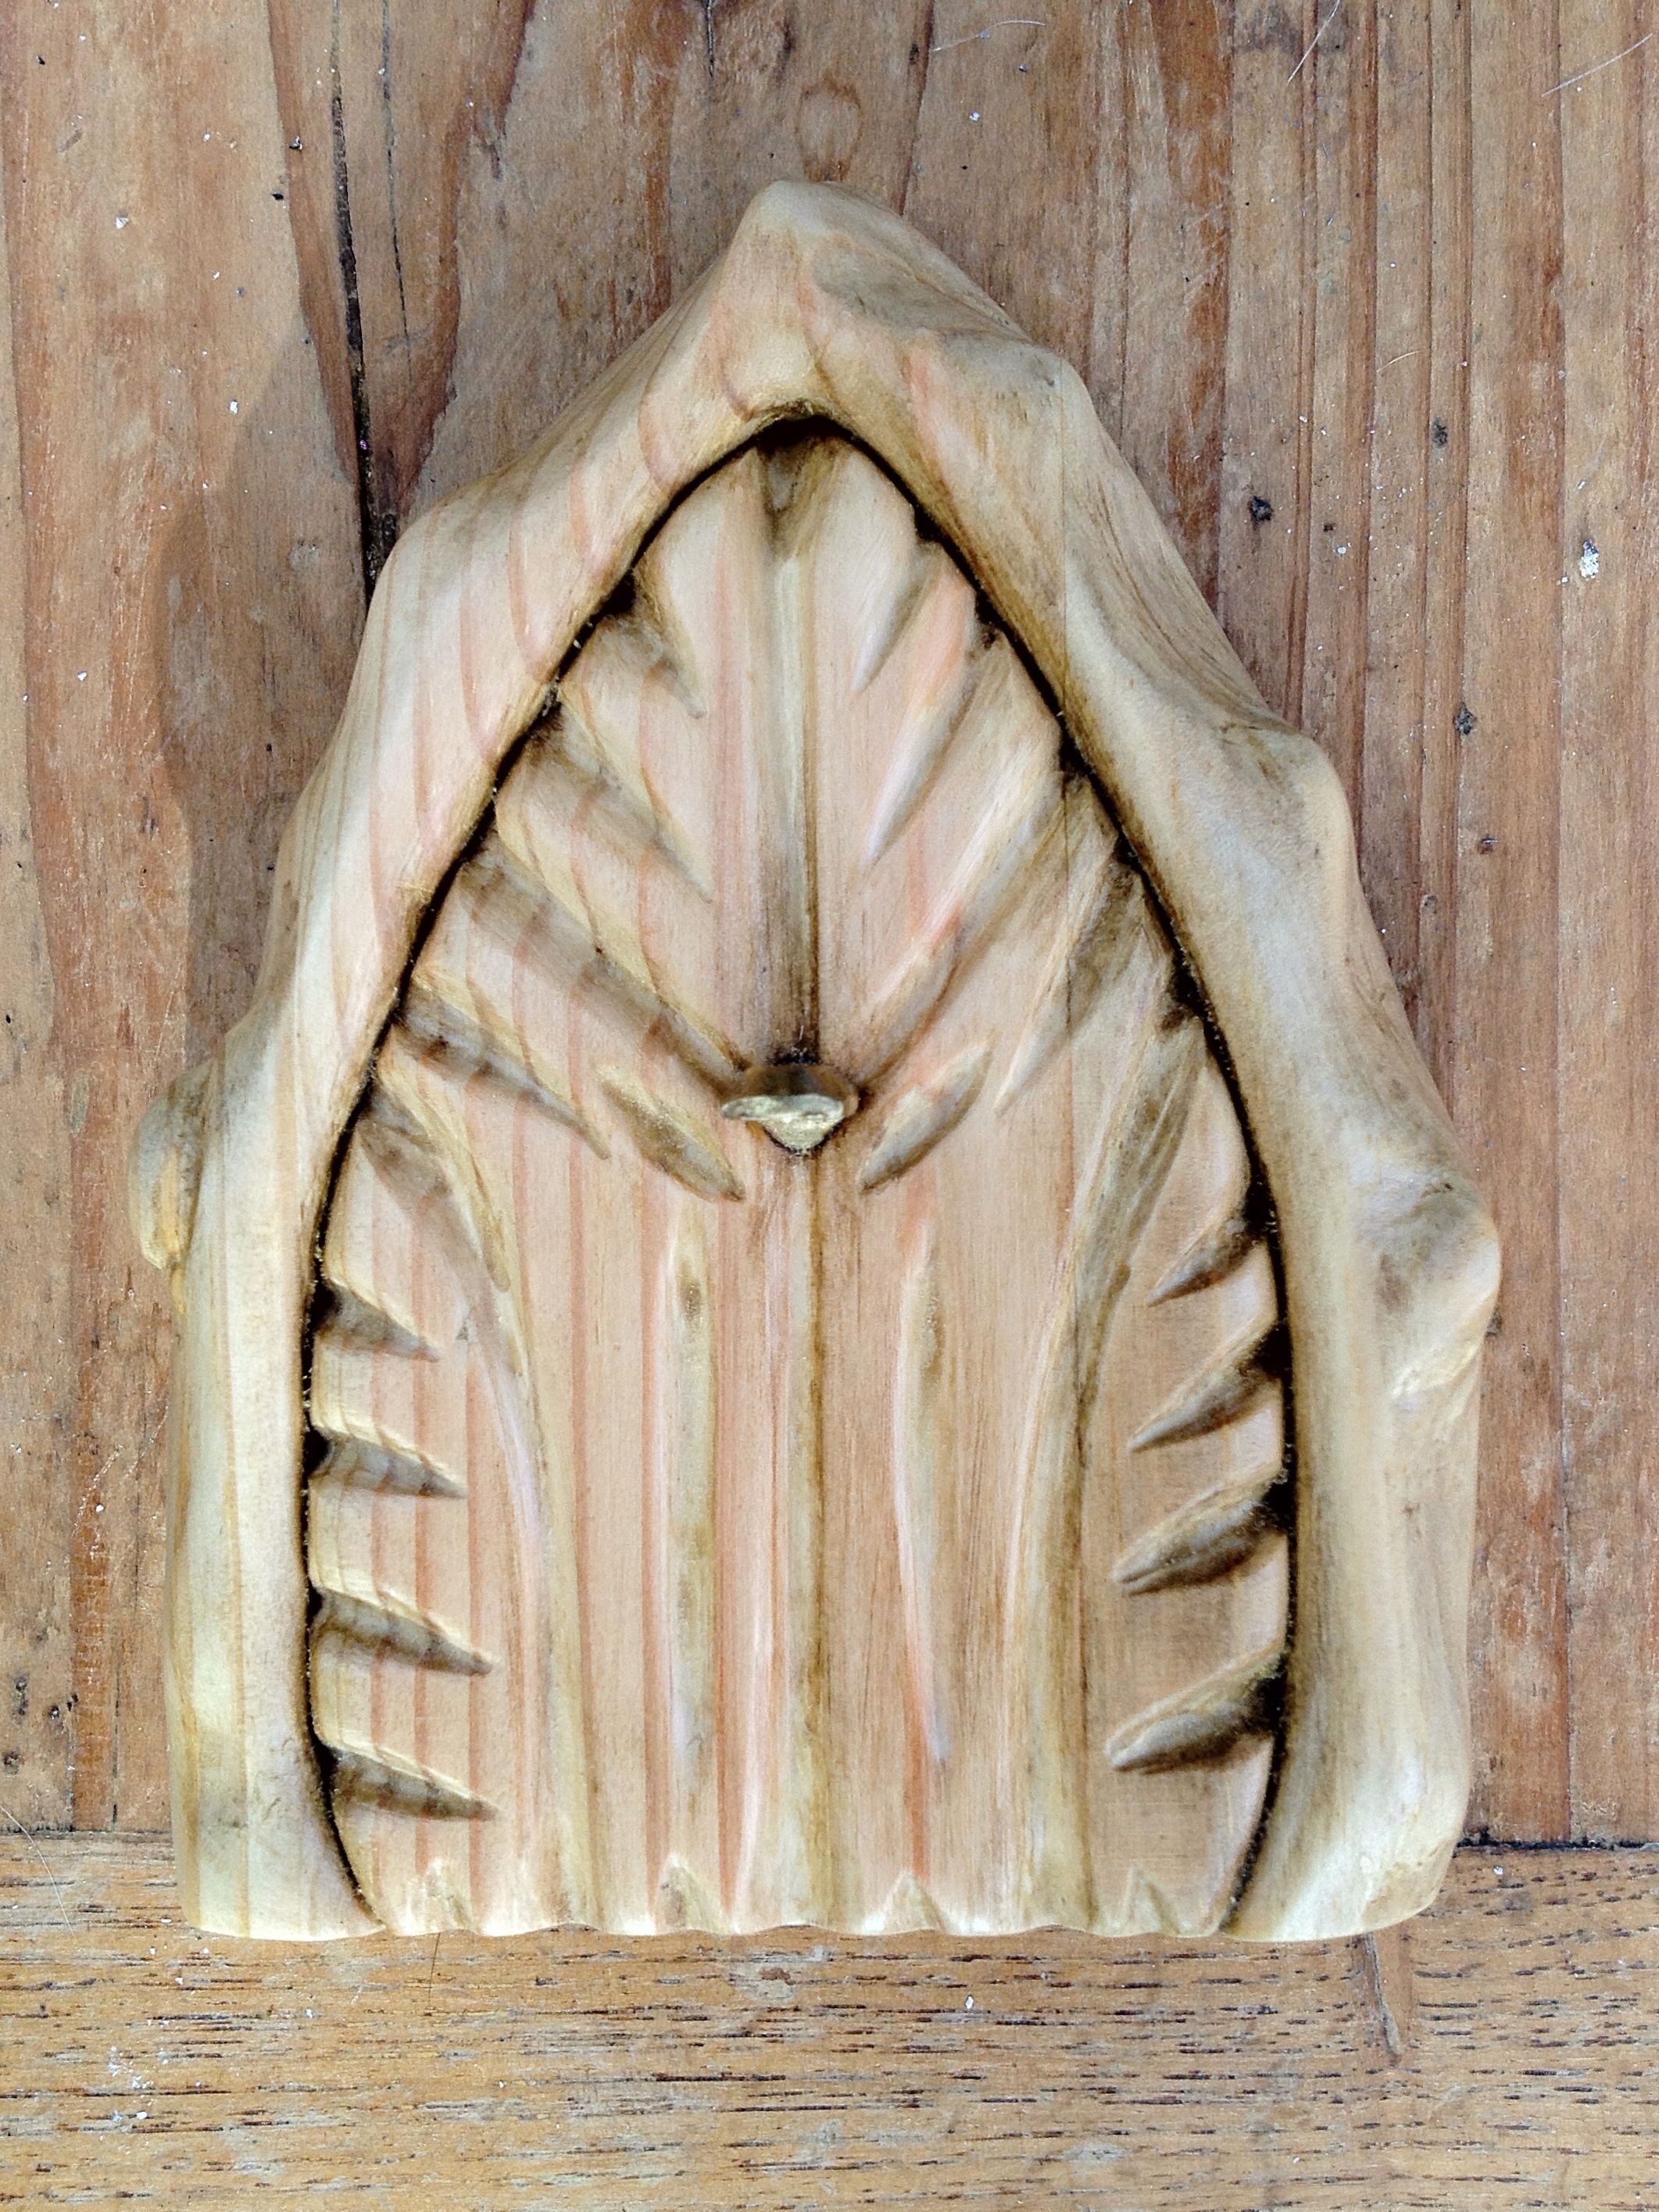 Fairy door wooden fairy doors pinterest for Wooden fairy doors